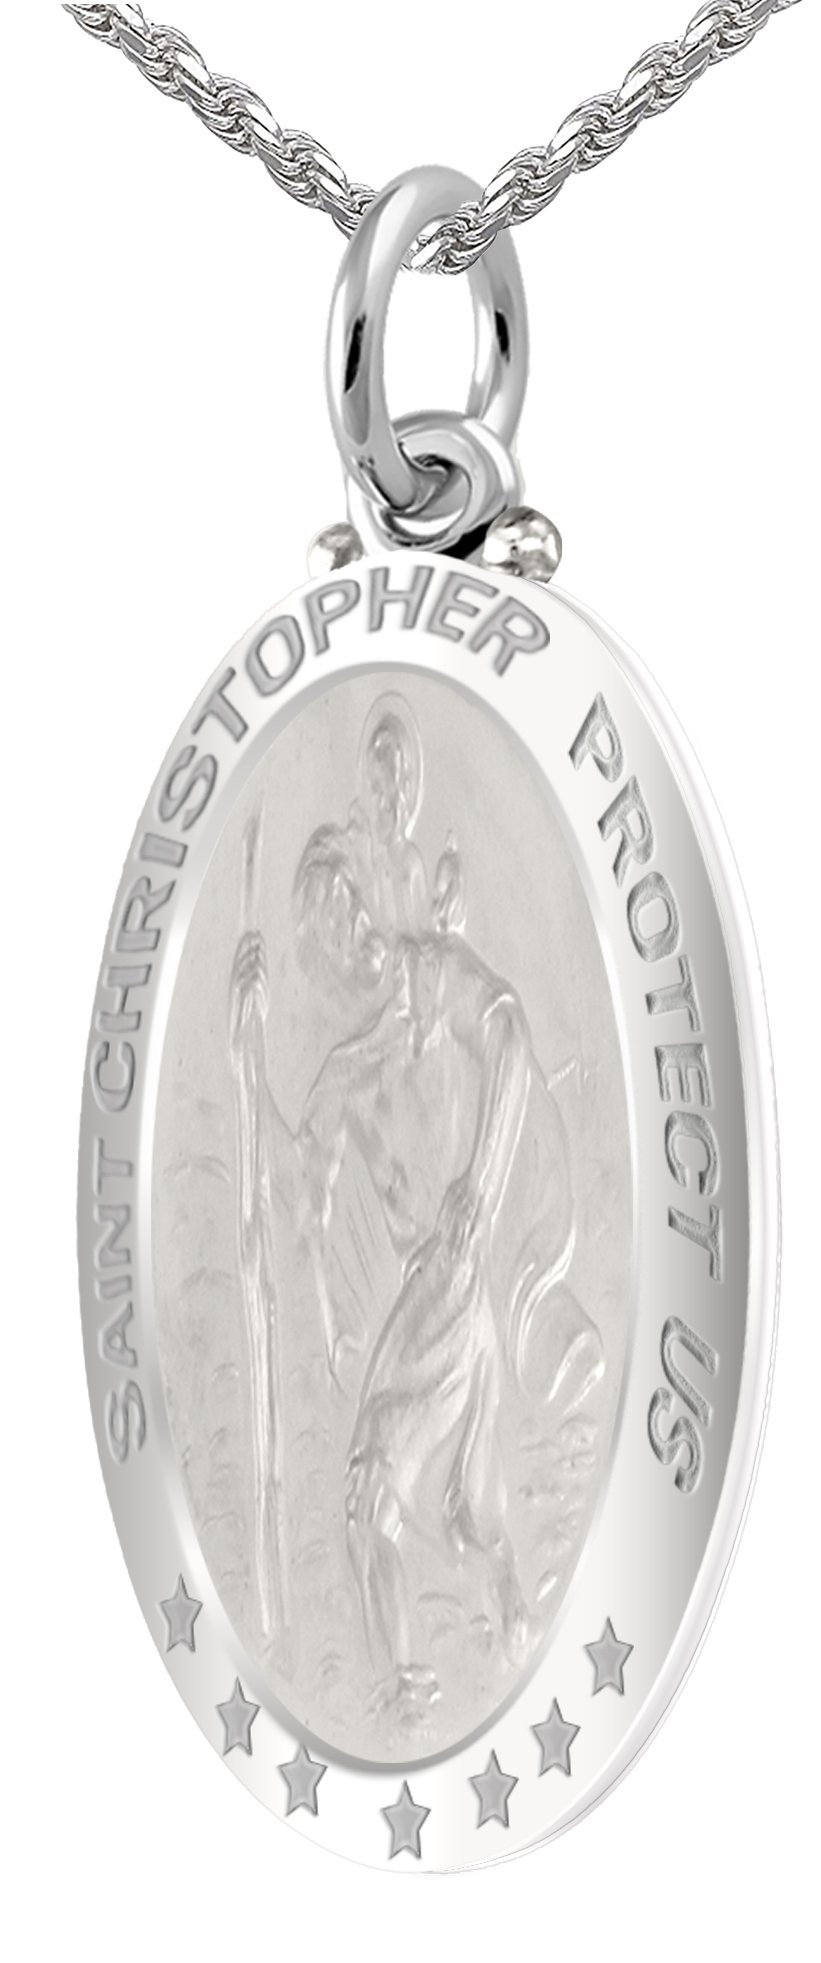 Men's 0.925 Sterling Silver St Christopher Oval High Polished 1.25'' Pendant 2.0mm Curb Necklace, 24''